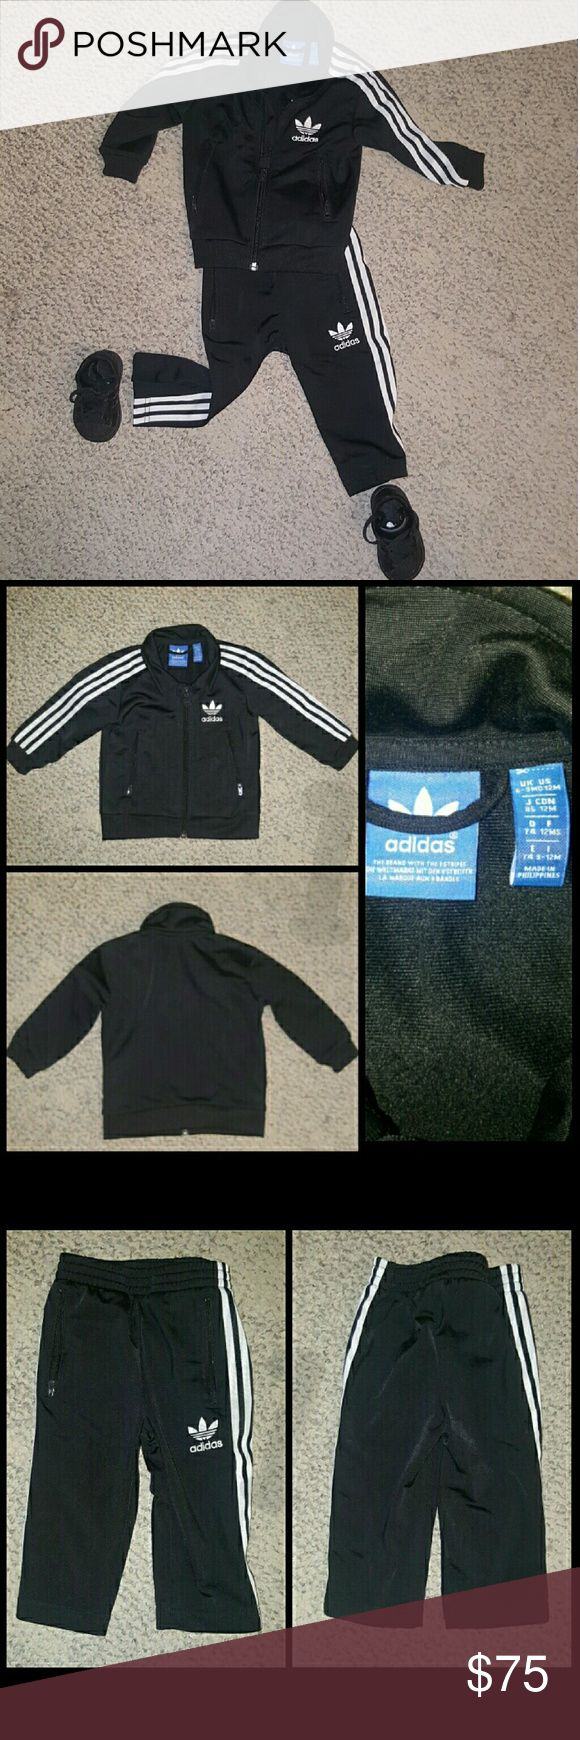 "Adidas Track Suit & Originals Superstar2 Sneakers TRACK SUIT-12 mths (Black w/ white stripes):  Jacket: 10"" inseam; Zip pockets; Full zip with stand-up collar; Ribbed cuffs and hem; Contrast 3-Stripes on sleeves; Printed Trefoil logo on left chest Pants: Elastic waist; Contrast 3-Stripes on sides; zip pockets; Printed Trefoil logo on left leg  SNEAKERS-US size 3K (All Black): Leather Rubber sole Classic fashion sneaker with tonal three stripes featuring lace-up closure and non-marking…"